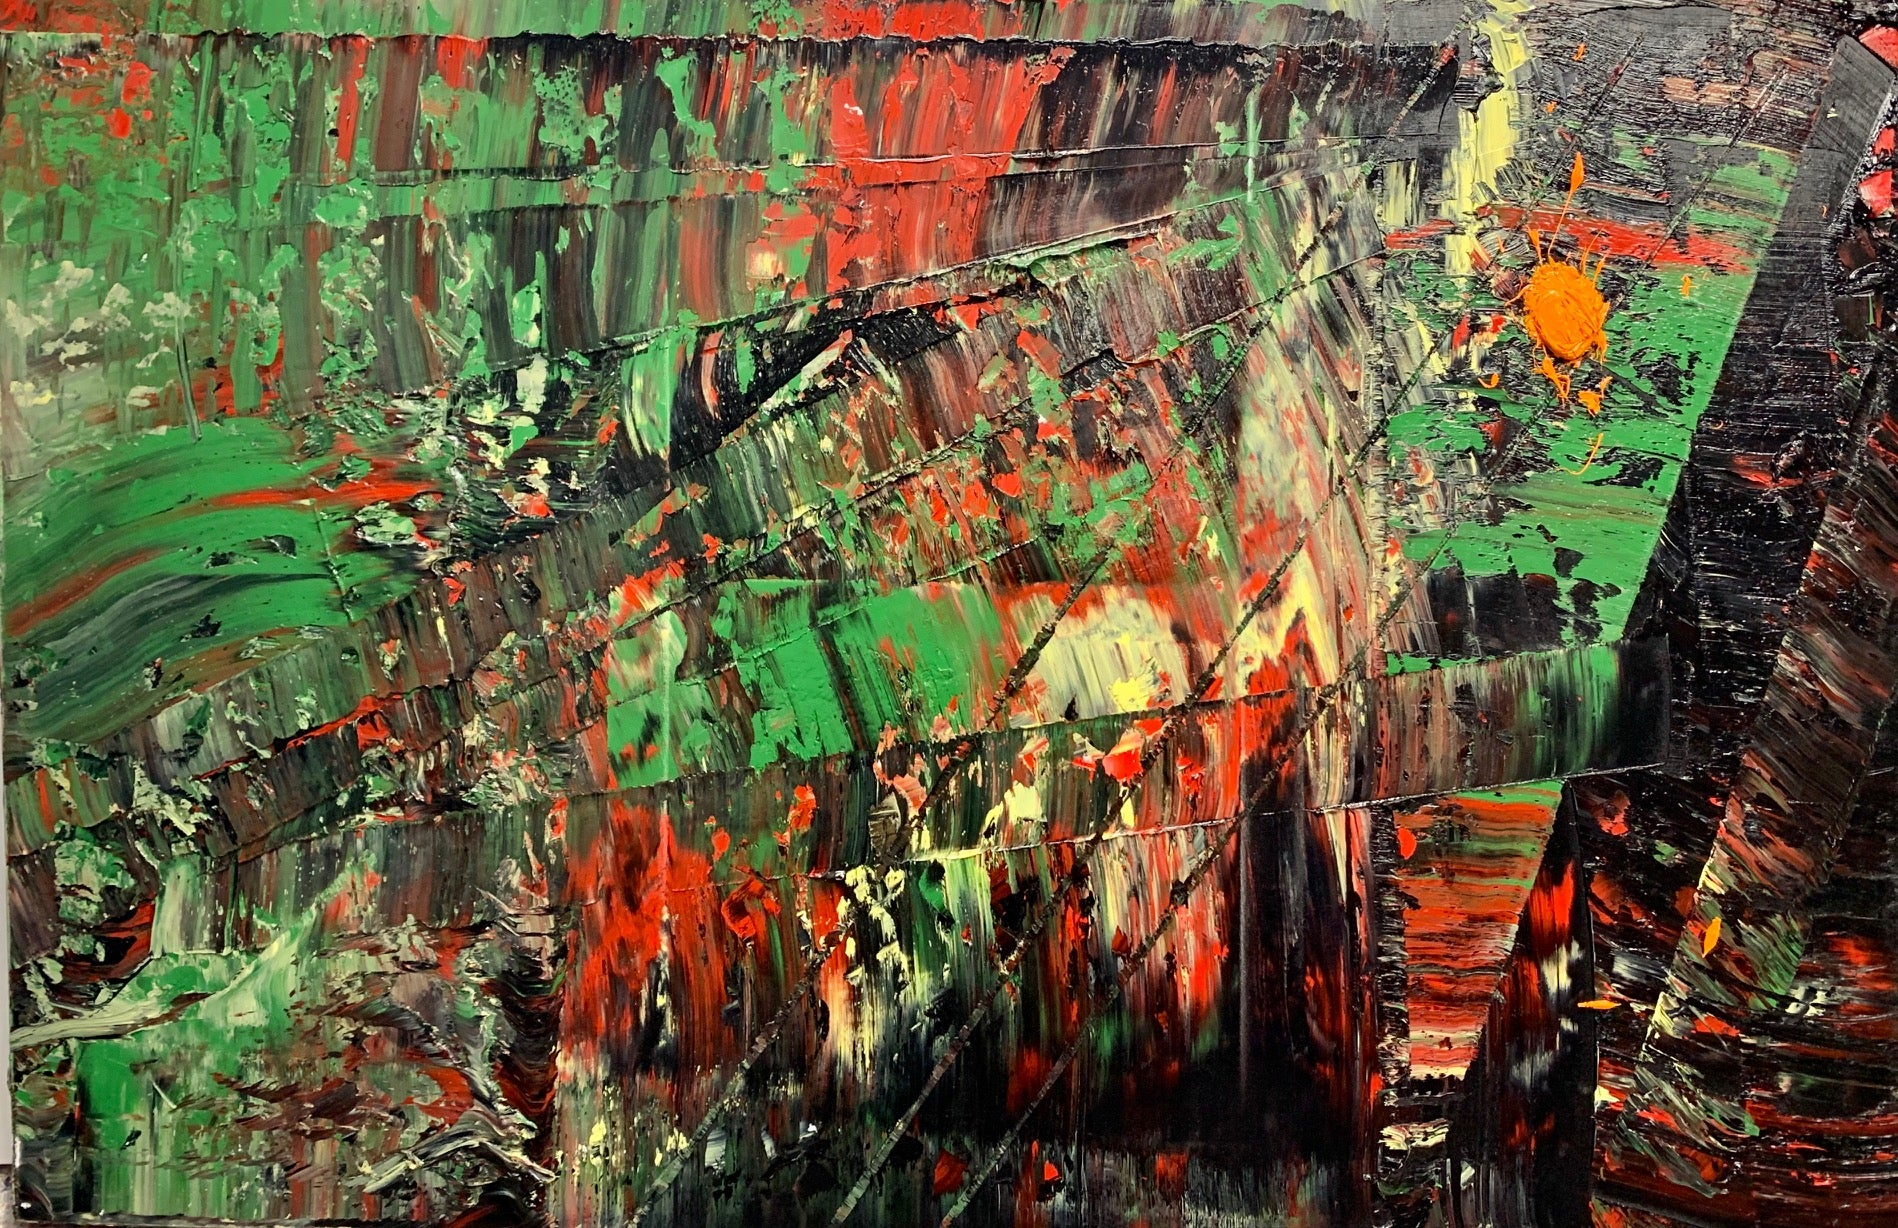 Niam  - 40x60 inches oil on canvas, 2020: ( Special covid pricing)